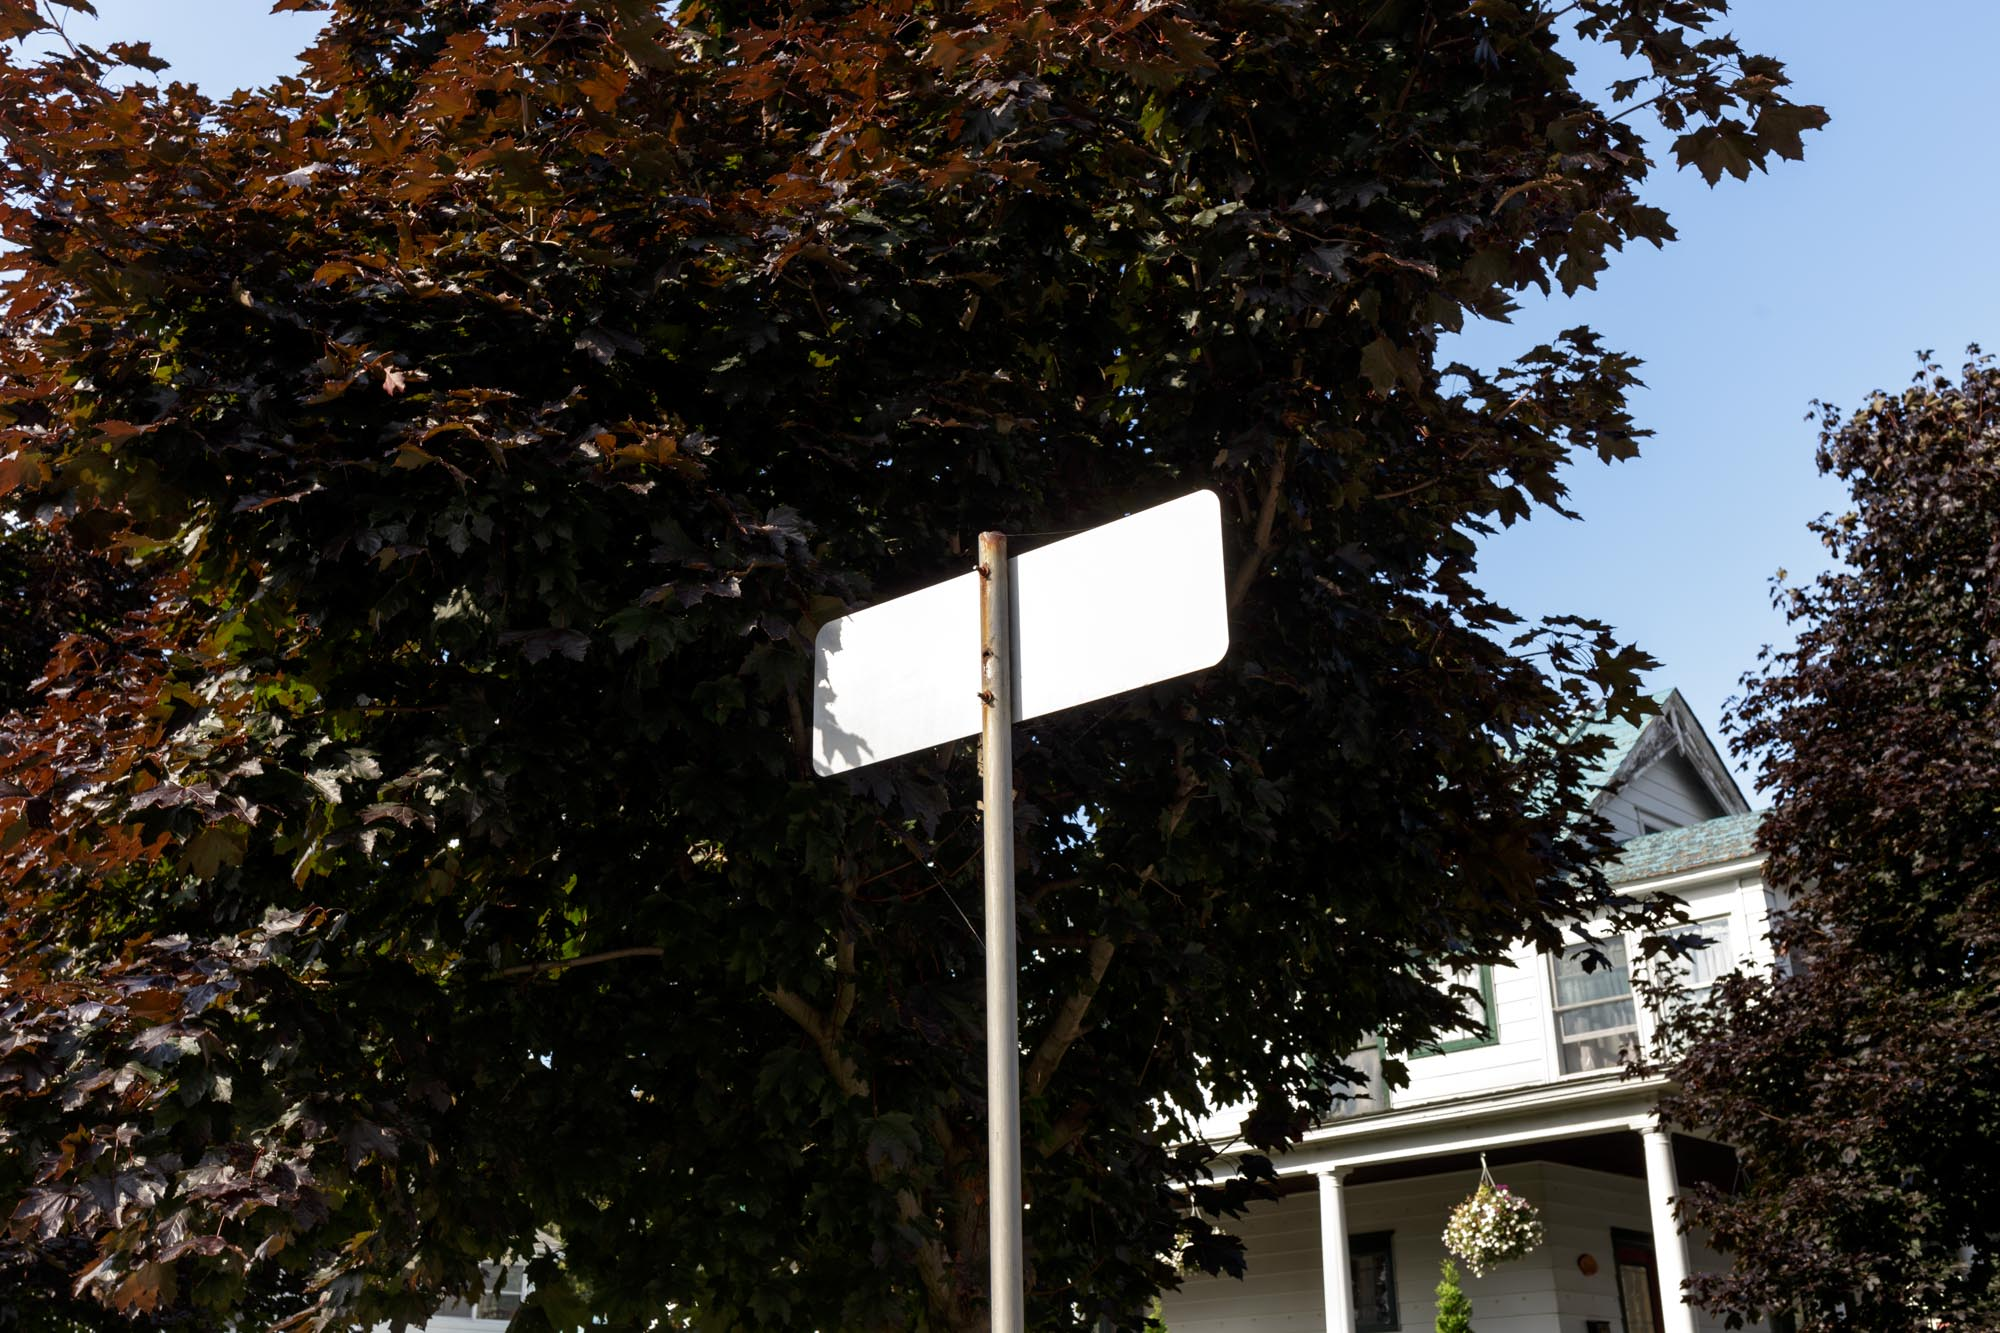 Street Sign and Trees